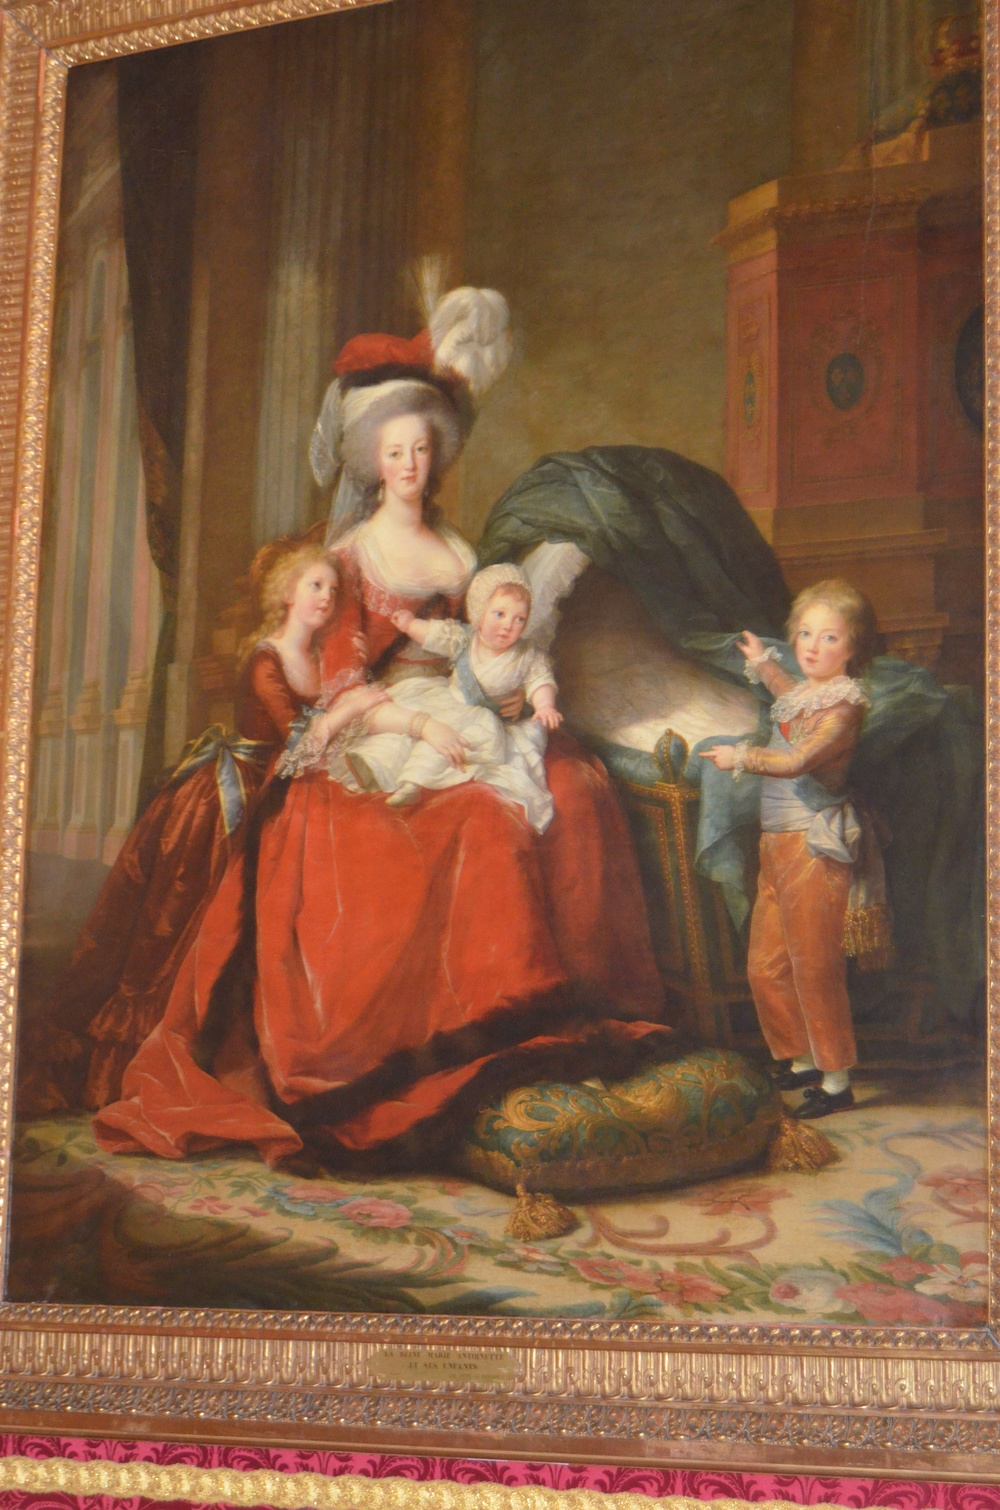 portrait of Marie Antoinette and her children. In the bassinet there was originally her baby painted, but she had the artist paint over it half way through because the baby died. In the right lighting you can still see the baby!